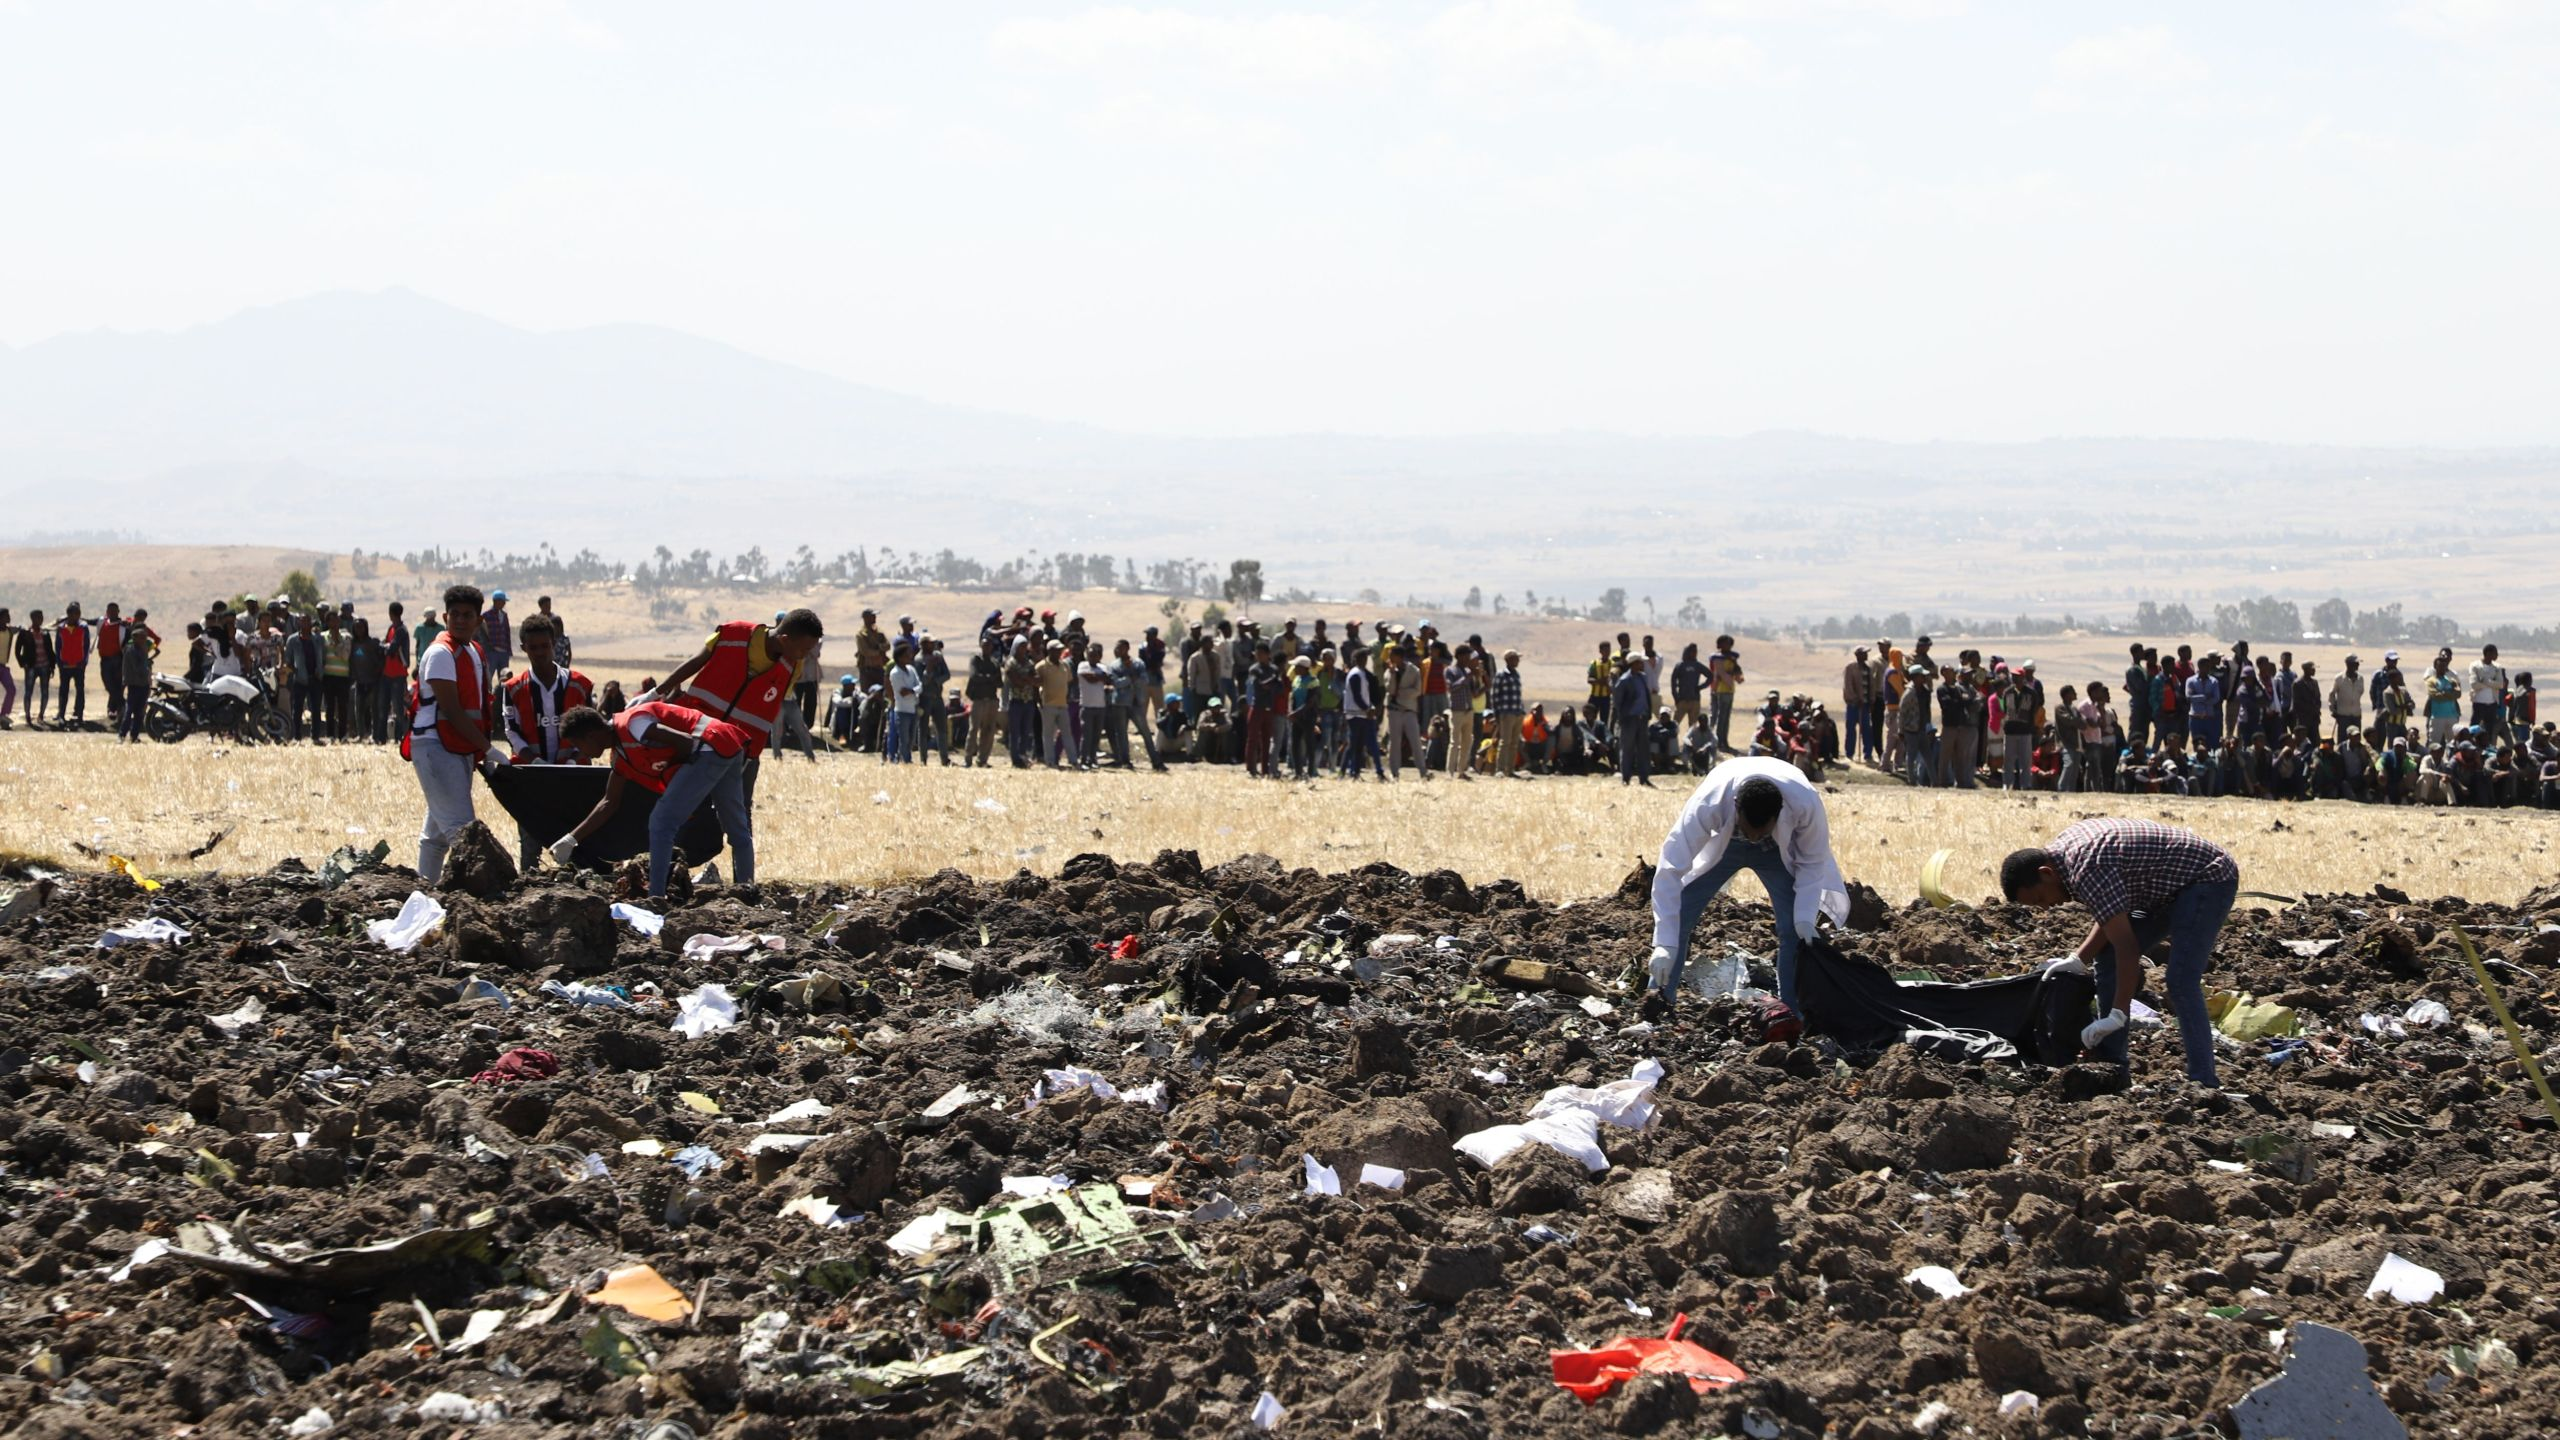 Rescue team collect remains of bodies amid debris at the crash site of Ethiopia Airlines near Bishoftu, Ethiopia, on March 10, 2019. -(Credit: MICHAEL TEWELDE/AFP/Getty Images)